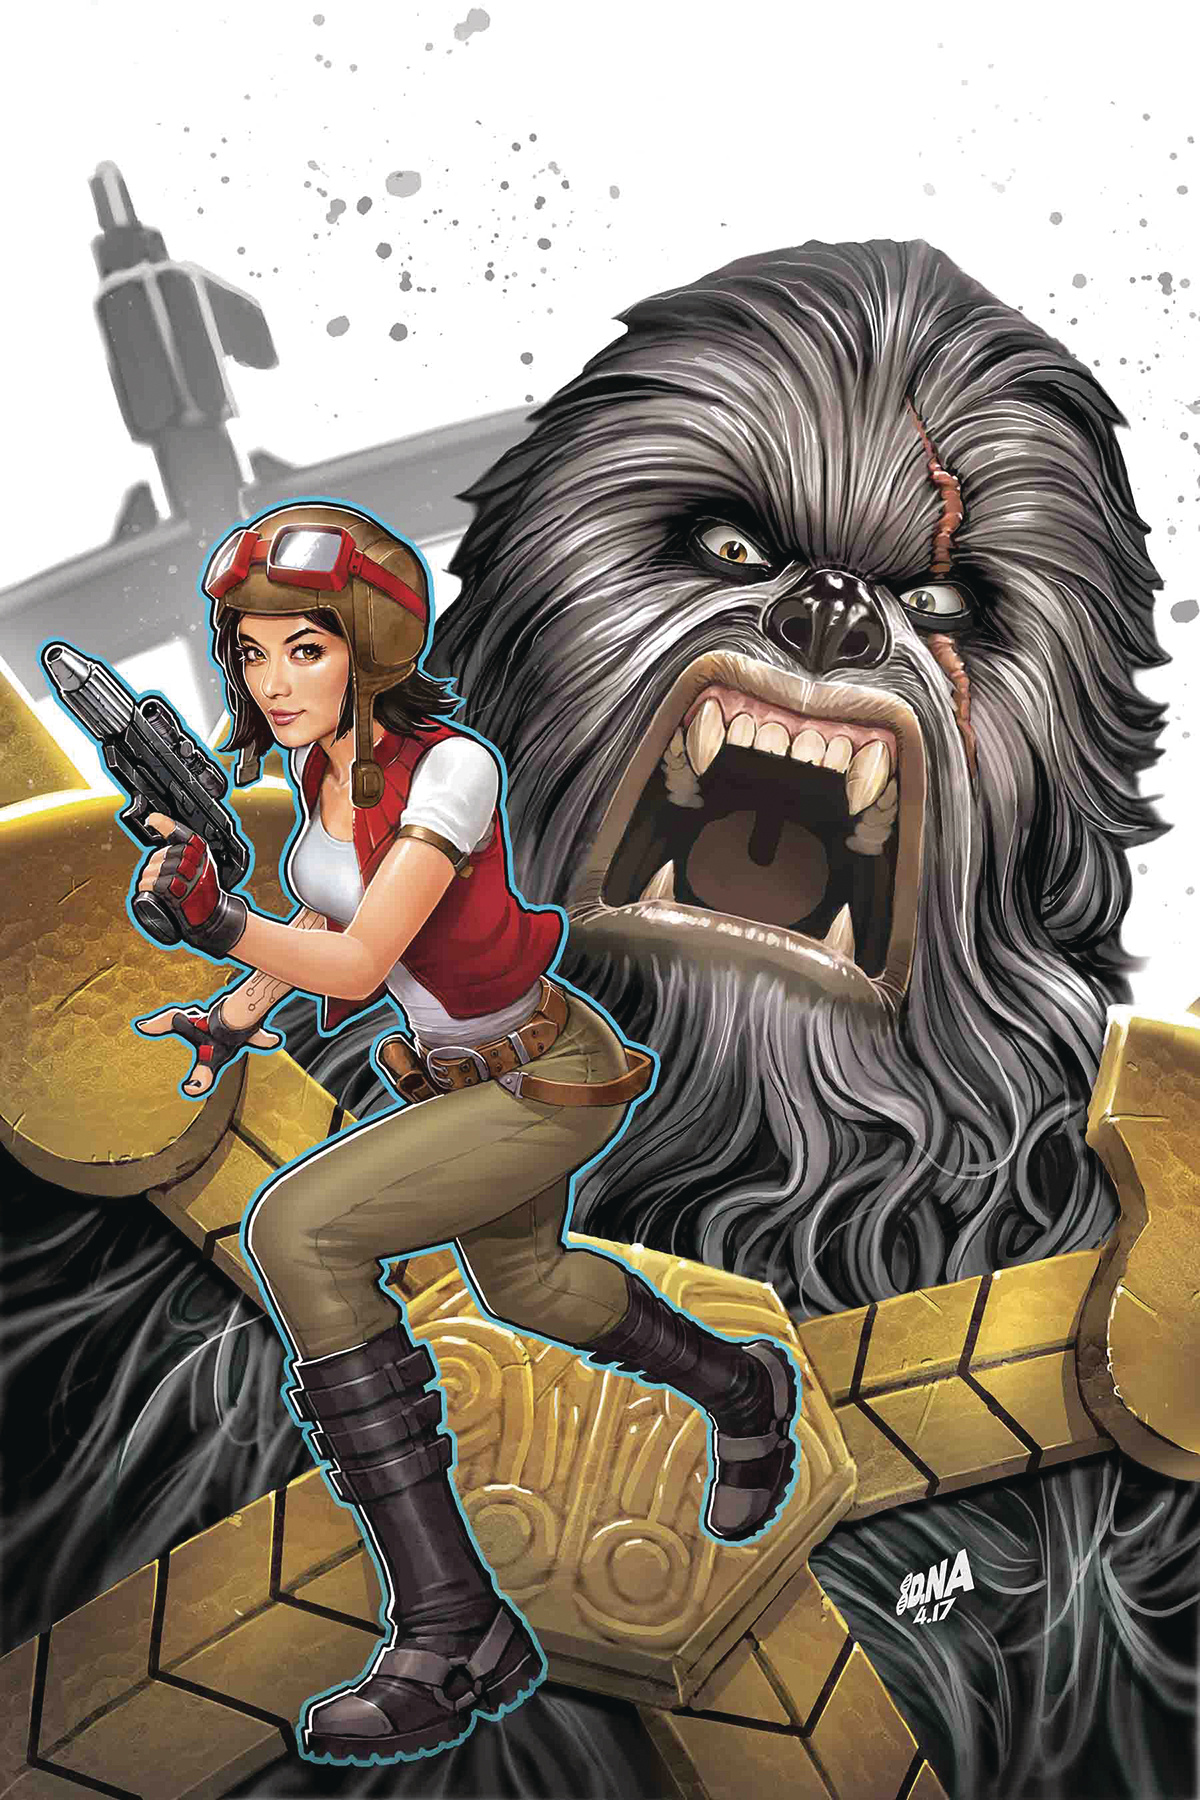 STAR WARS DOCTOR APHRA ANNUAL #1